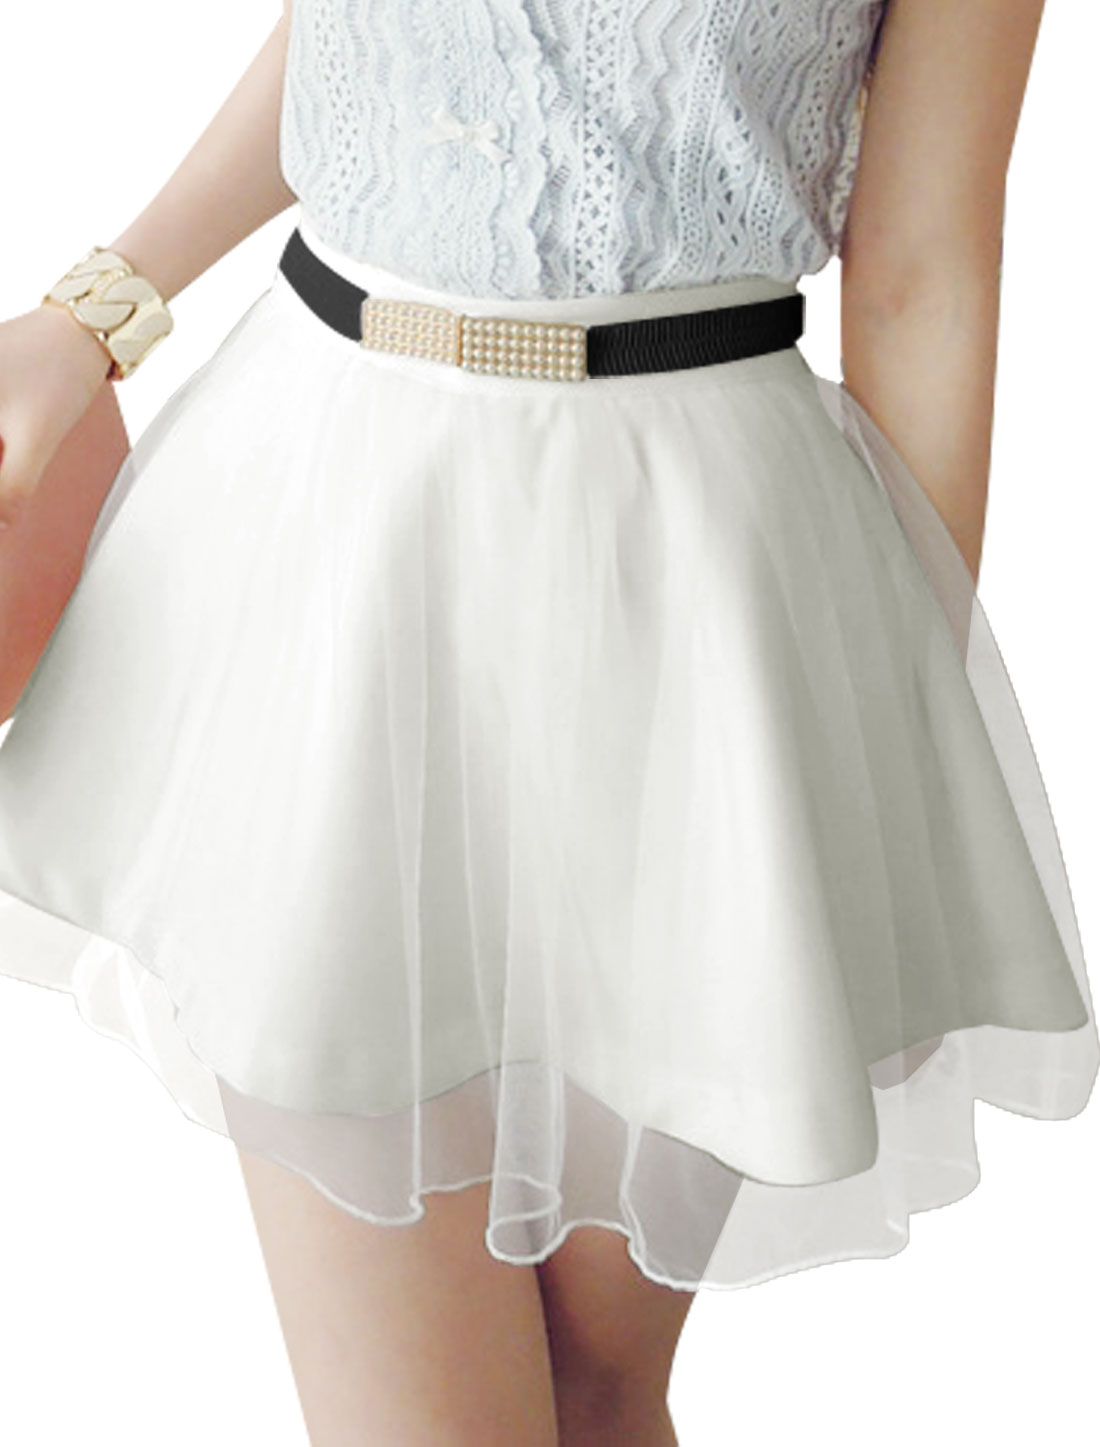 Lady Stretchy Waist Above Knee Skirt w Waist Belt White XS